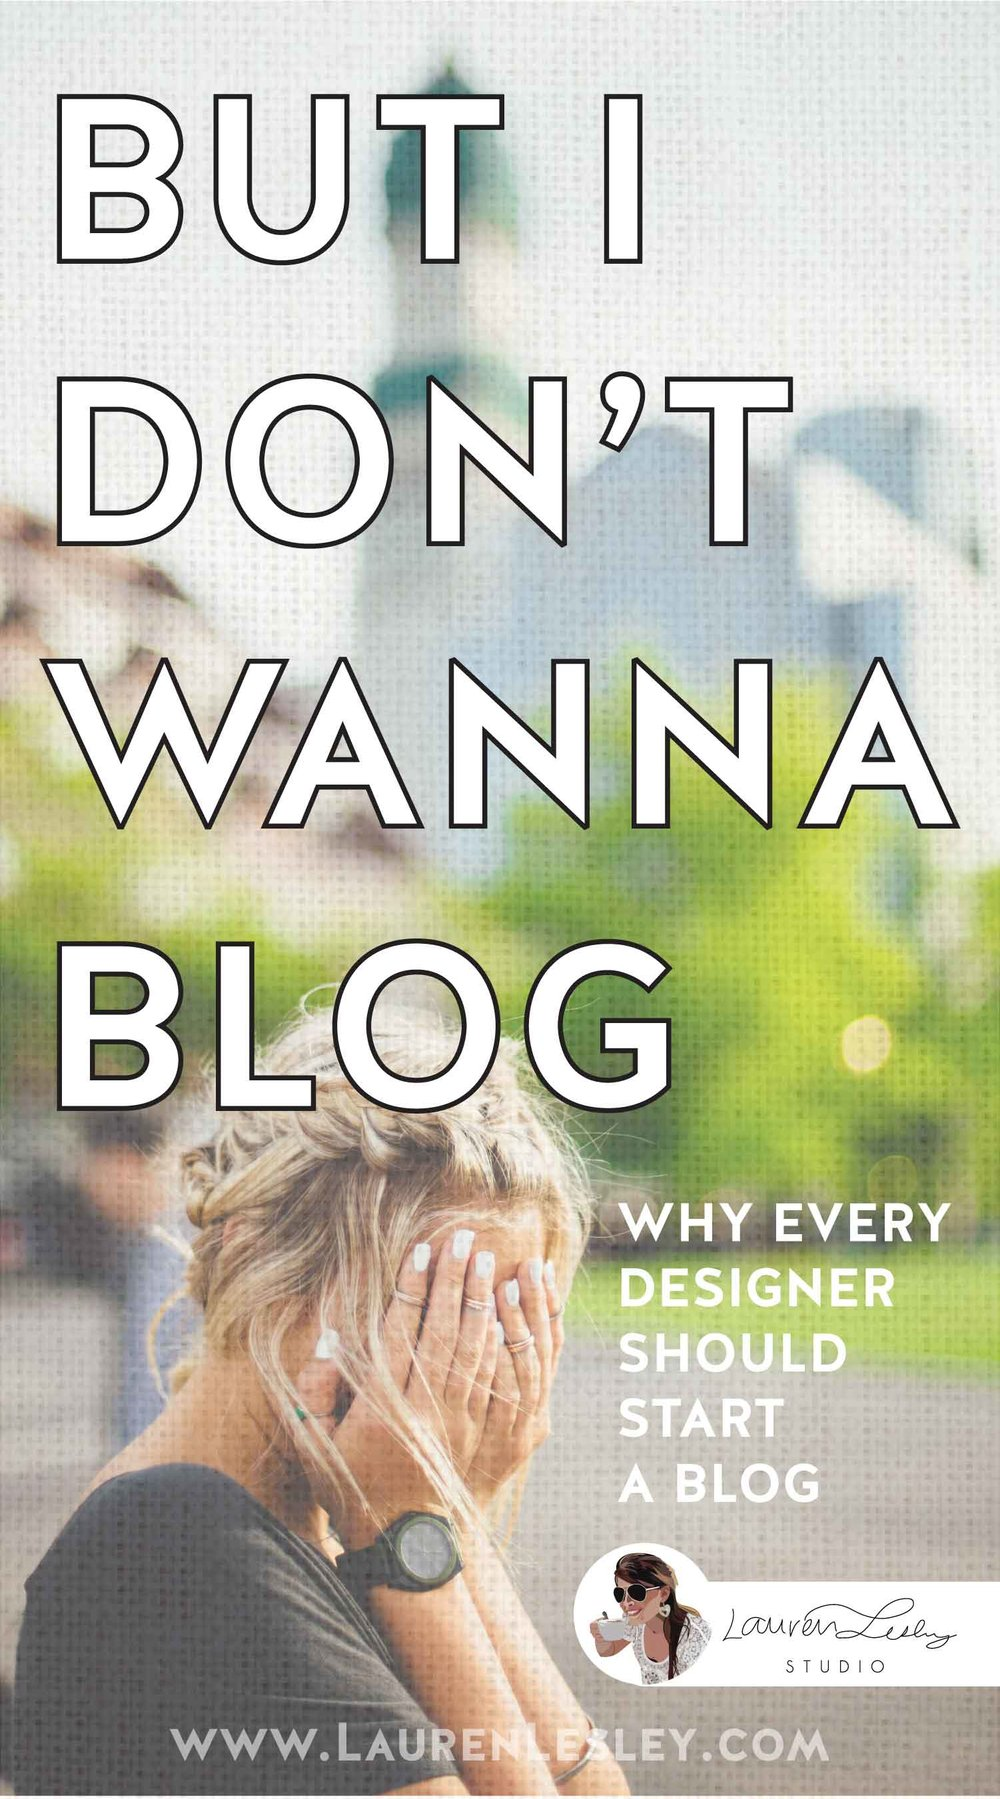 But I Don't Wanna Blog! - Designers are different.  While most people think that bloggers lead a glamorous lifestyle popping around town drinking a vanilla latté, laughing with their friends, and dabbling around on their beautiful Mac for a few hours a day...  Designers understand how much work goes into it.We get it.  Designers spend hours in the office researching for photoshoots:  trends, the right colors, which props are perfect yet fit the budget - down to every last detail!  We've lugged around a car full of crap, multiple changes of outfits, make up supplies, and soo many 'just-in-case' props, trying to snag the perfect location with the perfect model in the right lighting and so on.  It's definitely fun, but it can also be grueling. On top of that, designers are used to being behind-the-scenes with the photographer giving direction and making their vision come to life.  We don't want to be the center of attention!But we love to create and obviously we want the whole wide world to know about our work.  So do we realllllly have to blog?